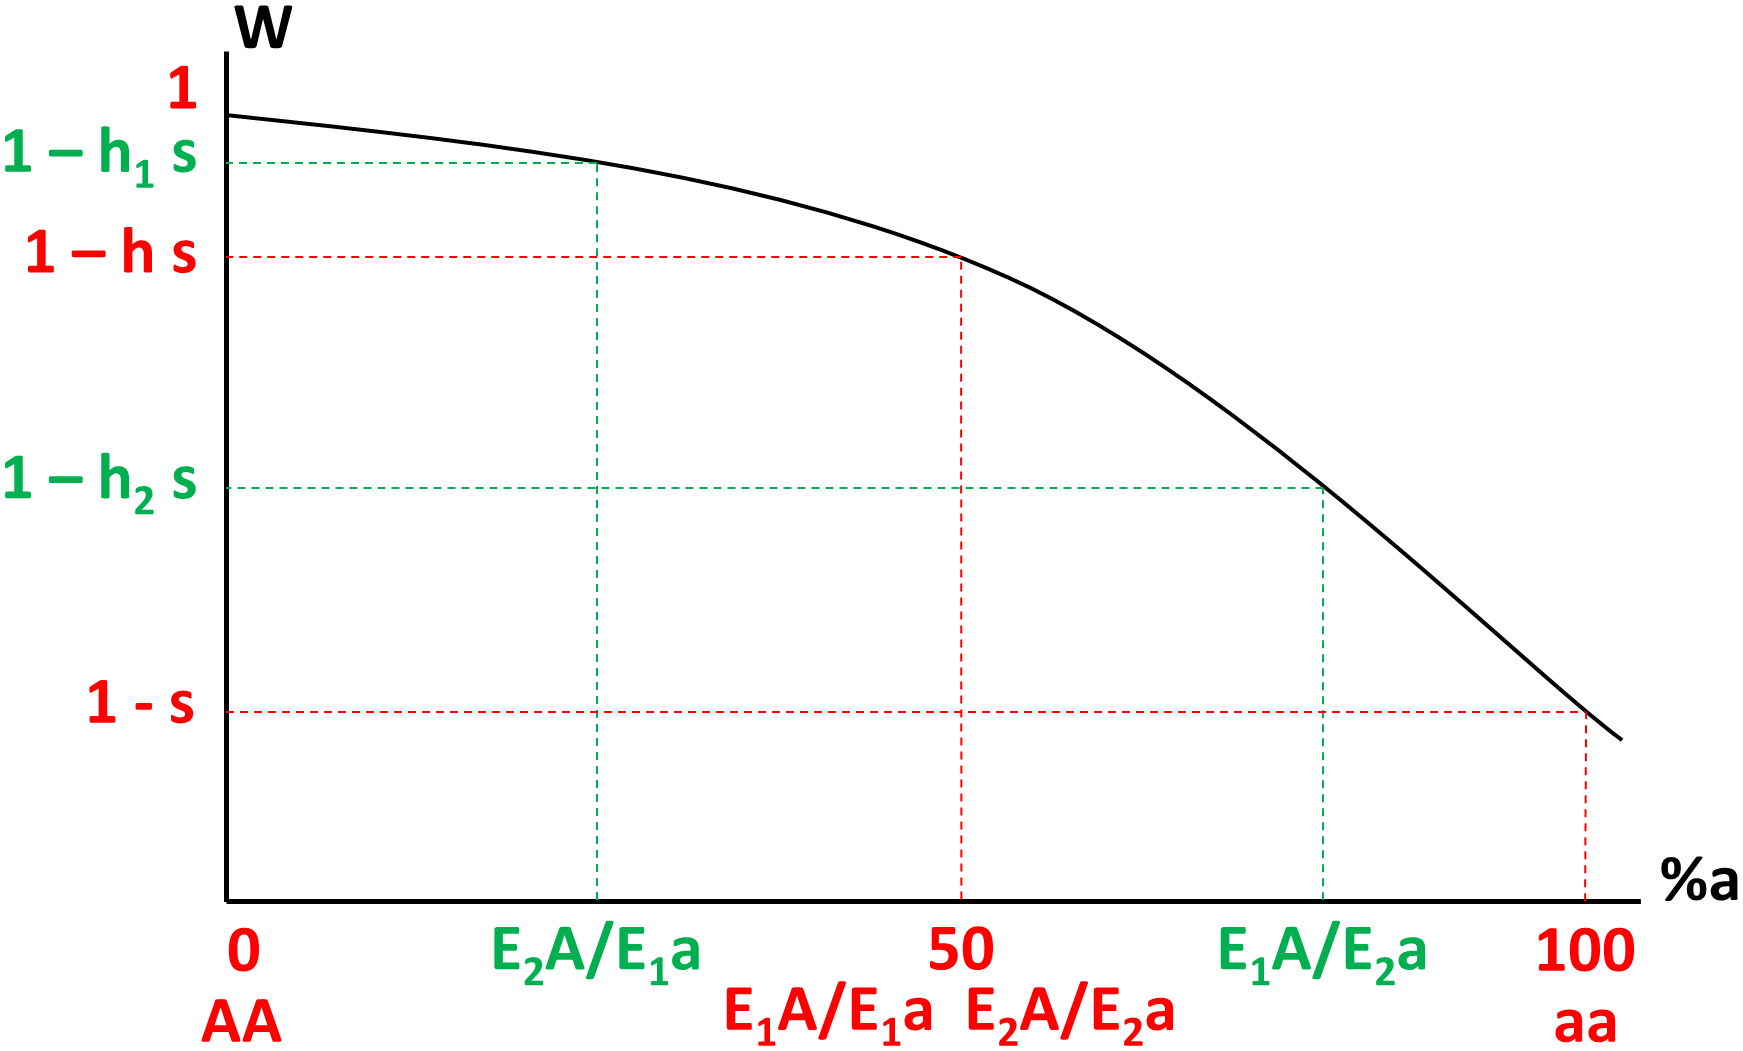 Variation of fitness (W, y-axis) as a function of the percentage of defective proteins noted %a (x-axis, from 0% in AA homozygotes to 100% in aa homozygotes) in different genotypes, where E1 and E2 are the weaker and stronger enhancer alleles respectively (e<sub>2</sub> &gt; e<sub>1</sub>).